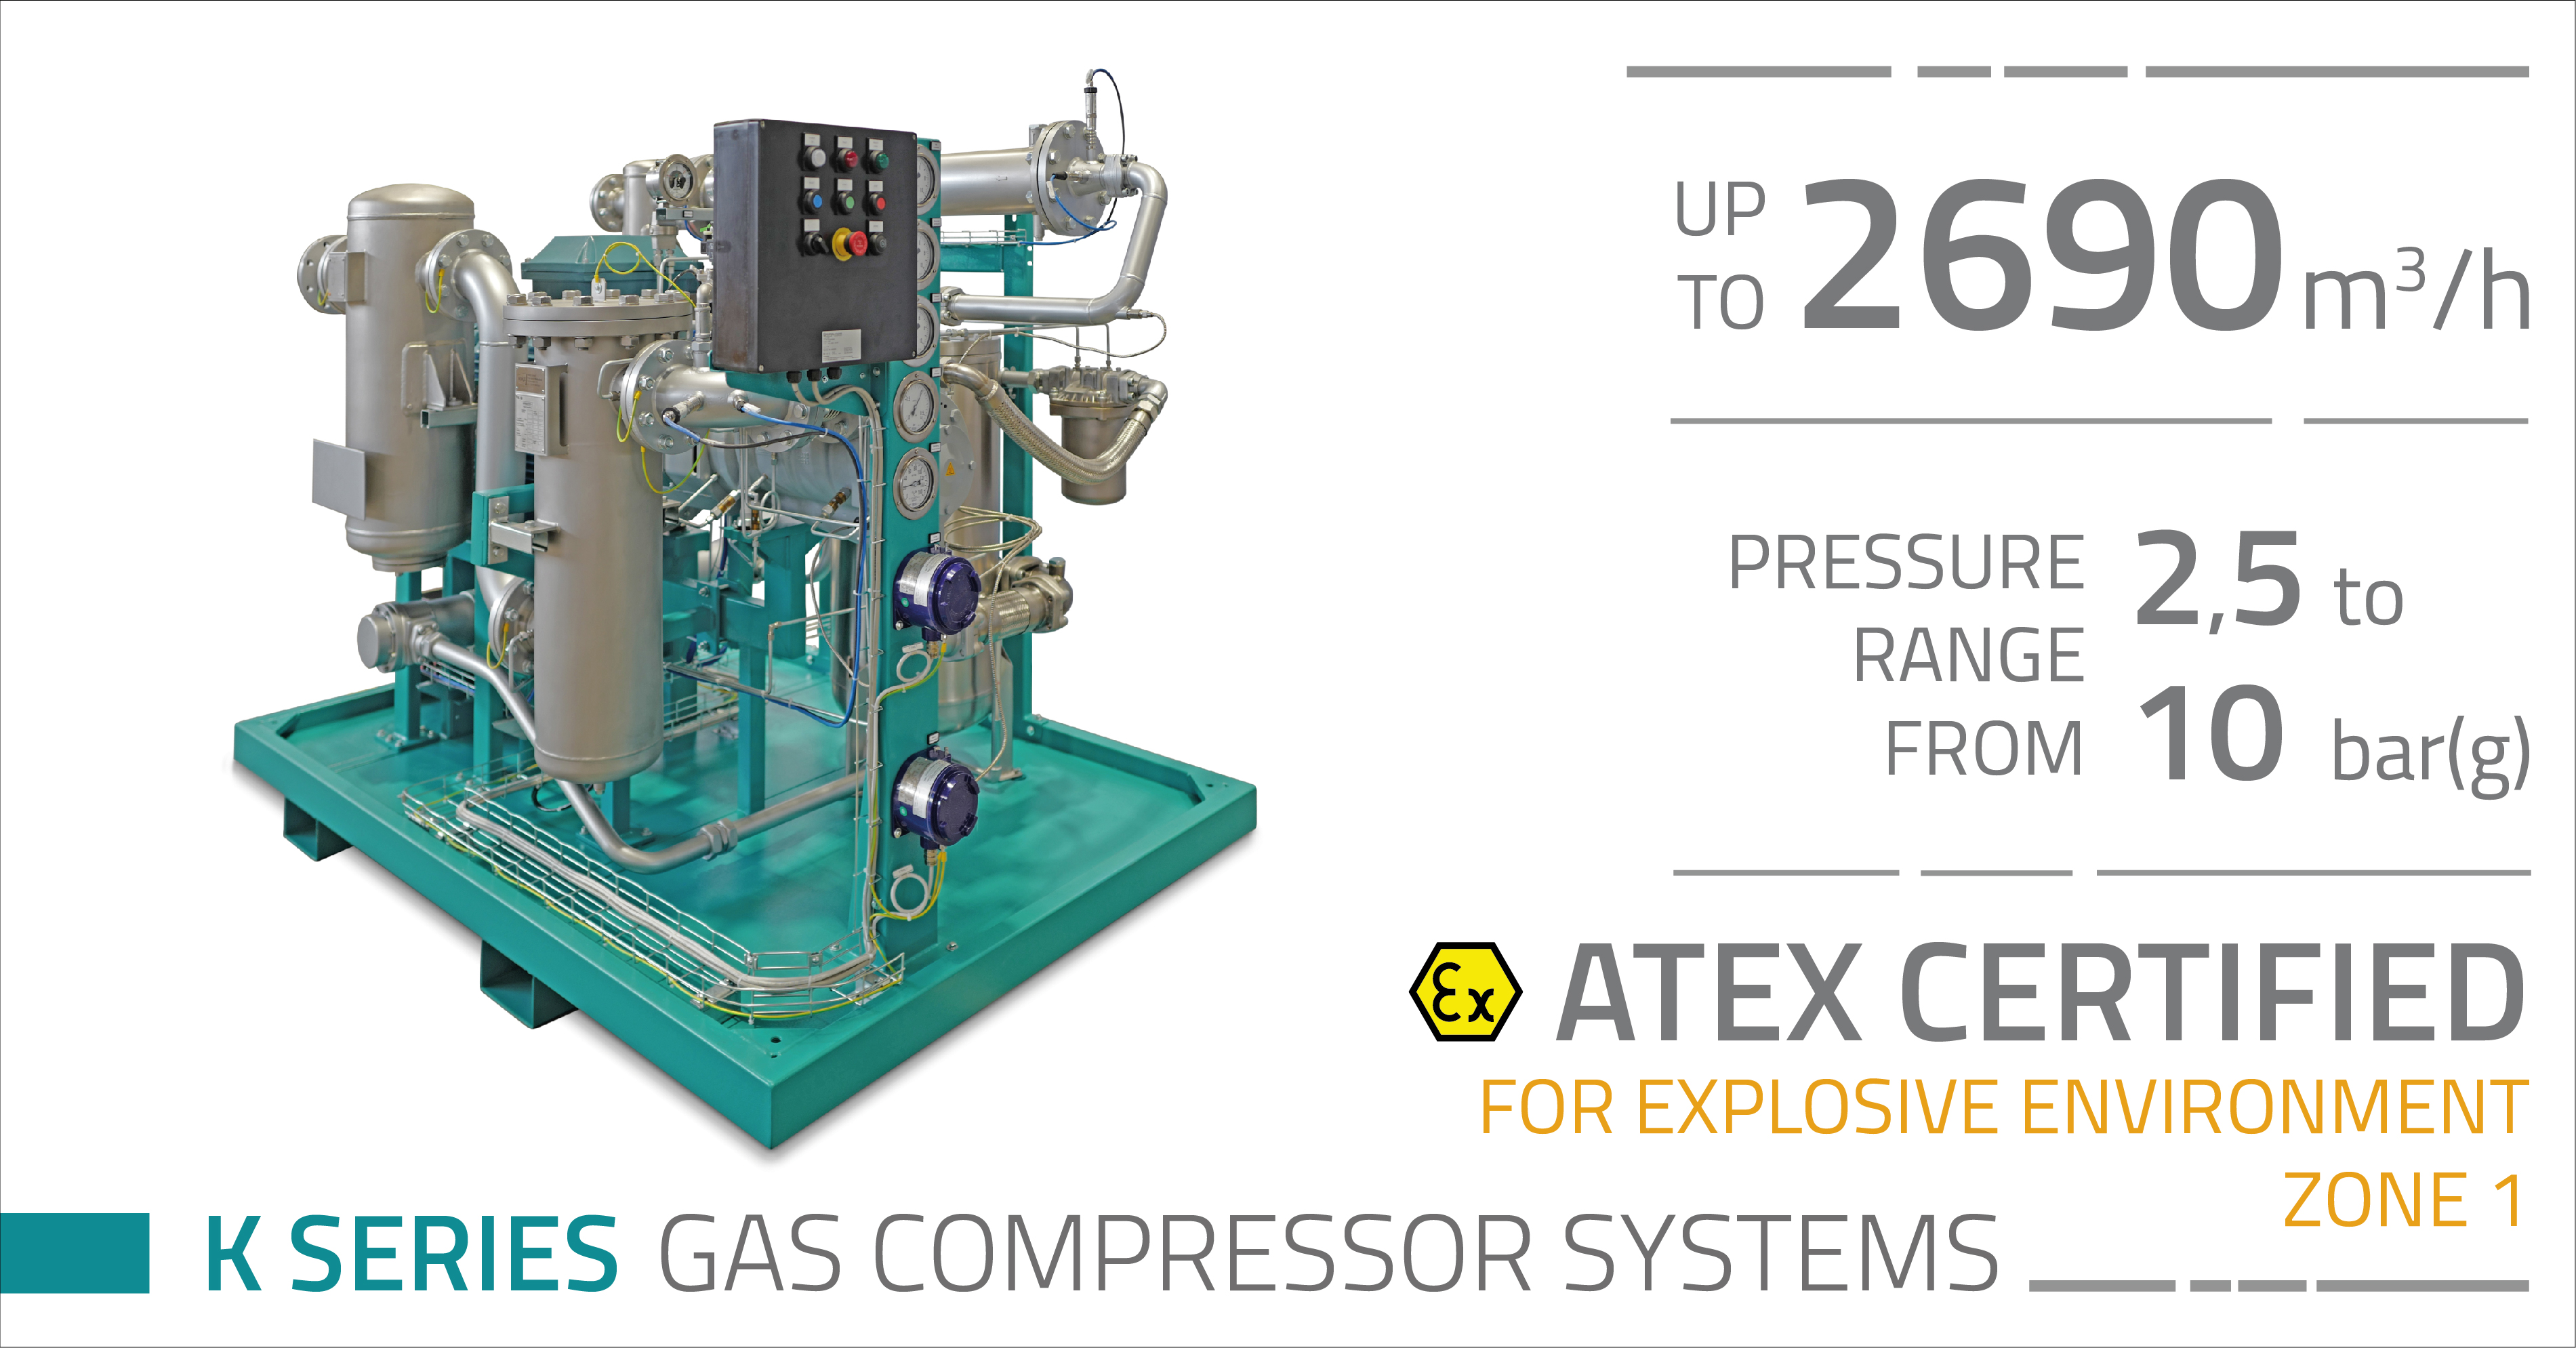 PN_pics_K Series_gas compressor systems_mar21_infographic